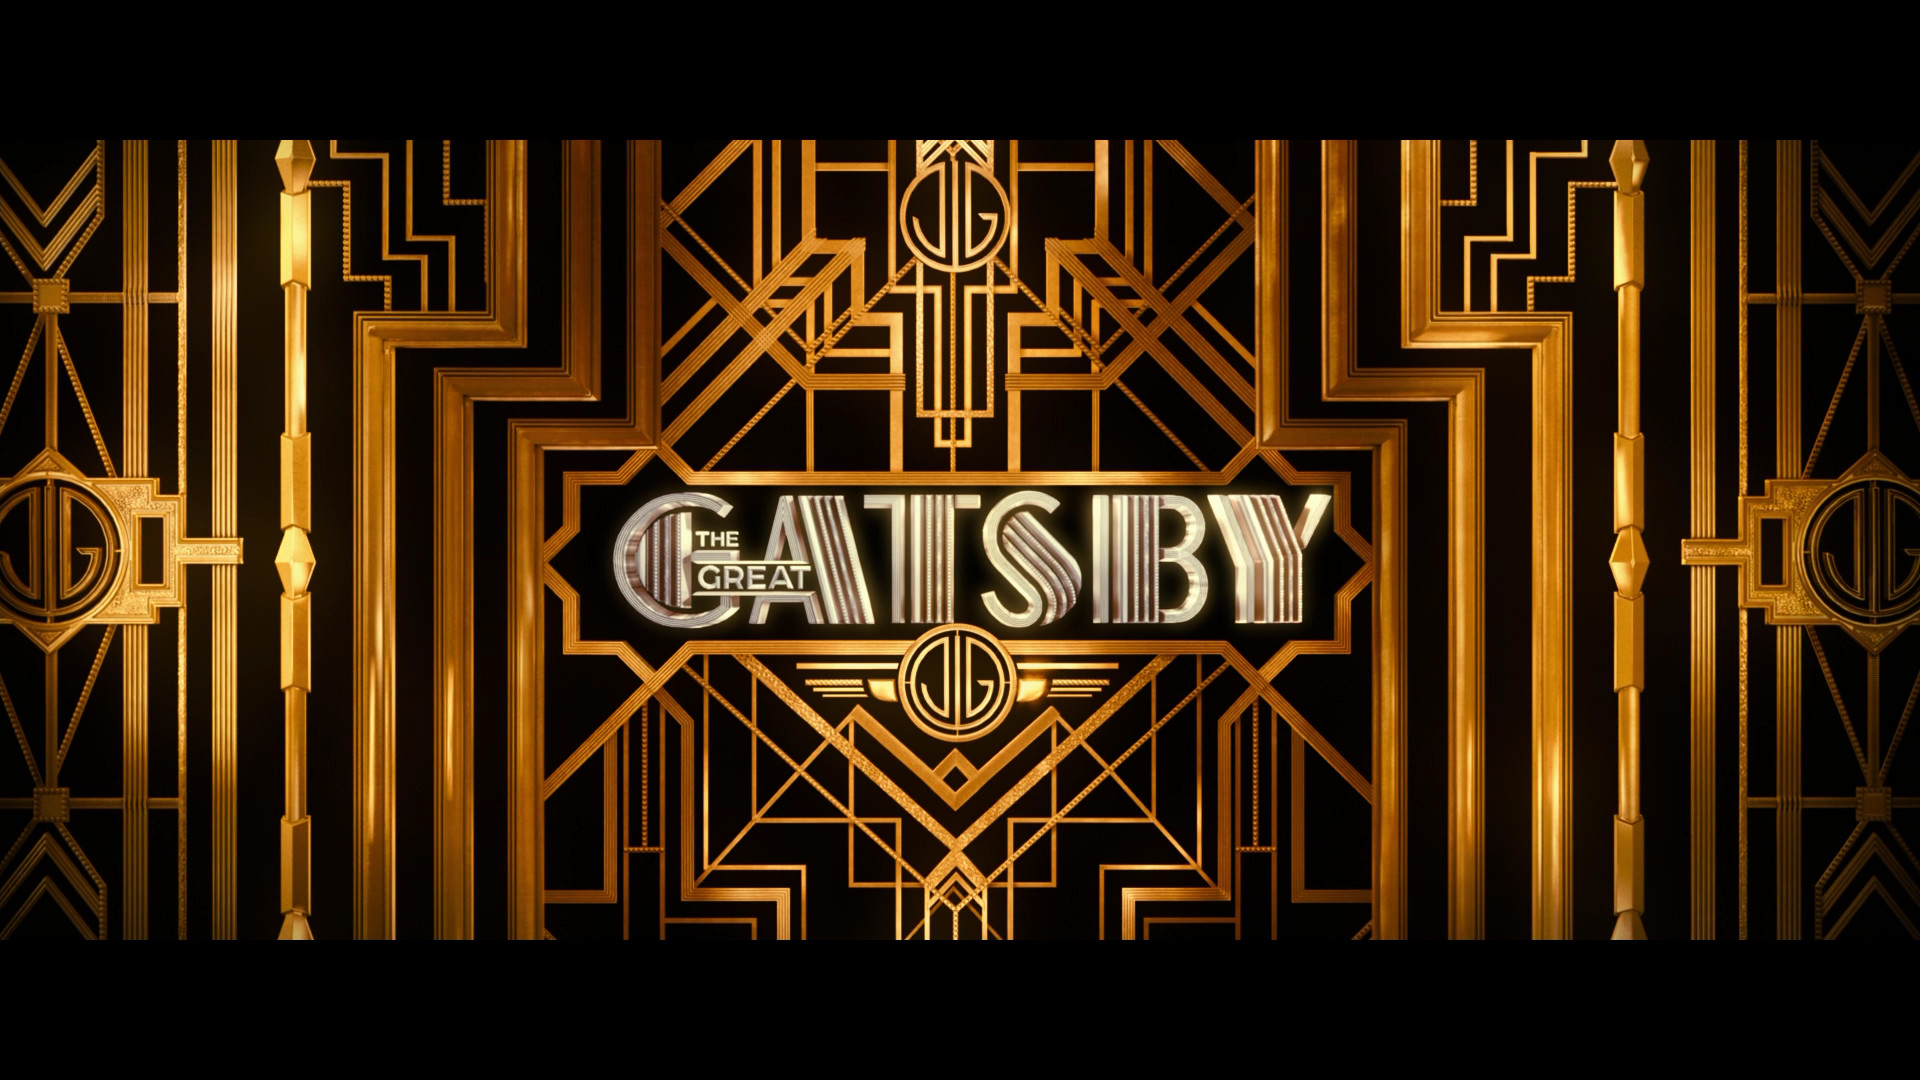 The Great Gatsby 1920x1080